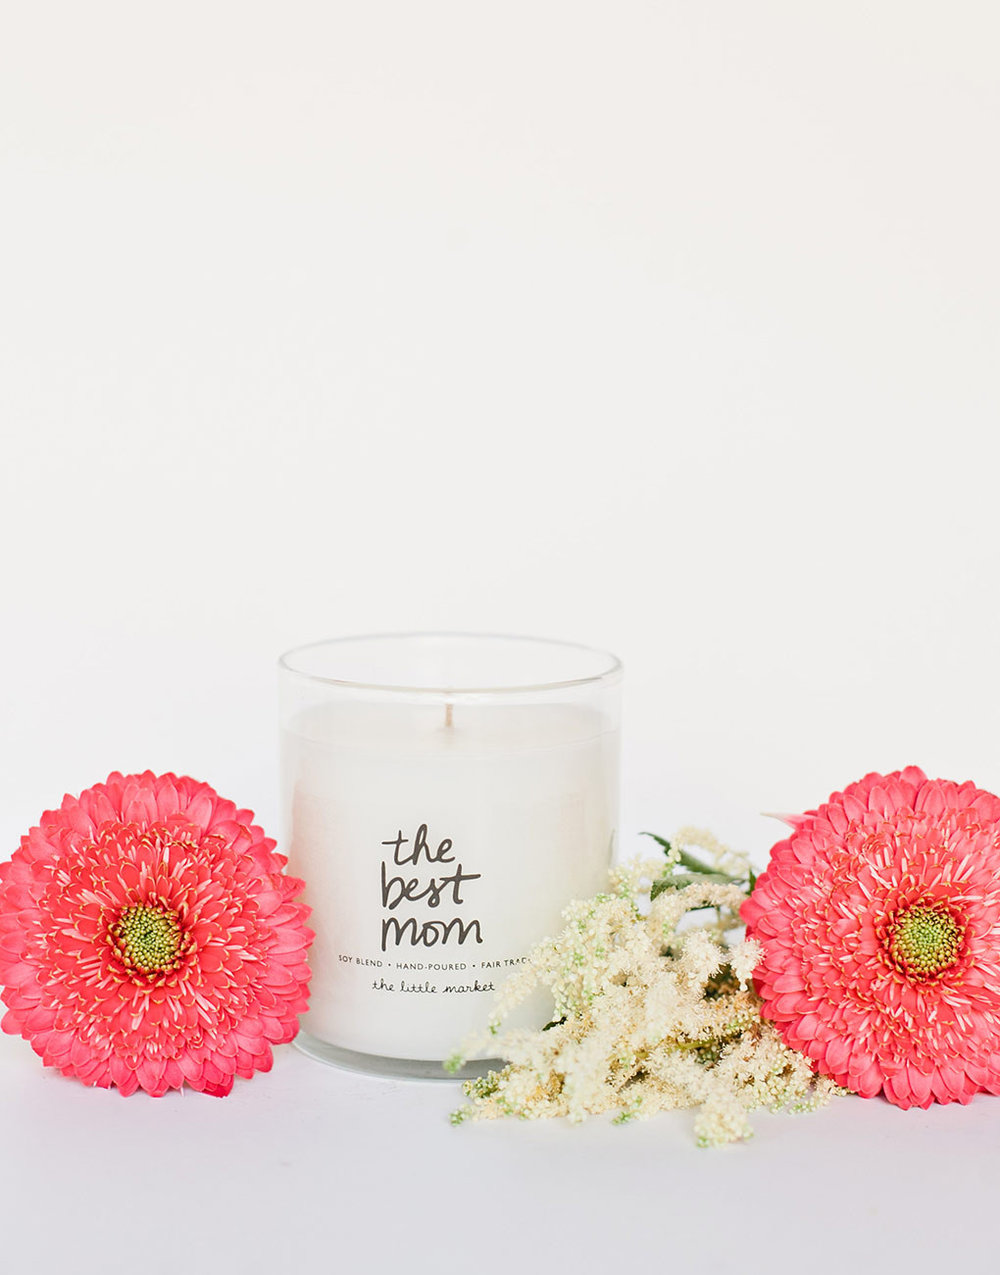 Soy Blend Candle - The Best Mom, The Little Market, $26.00